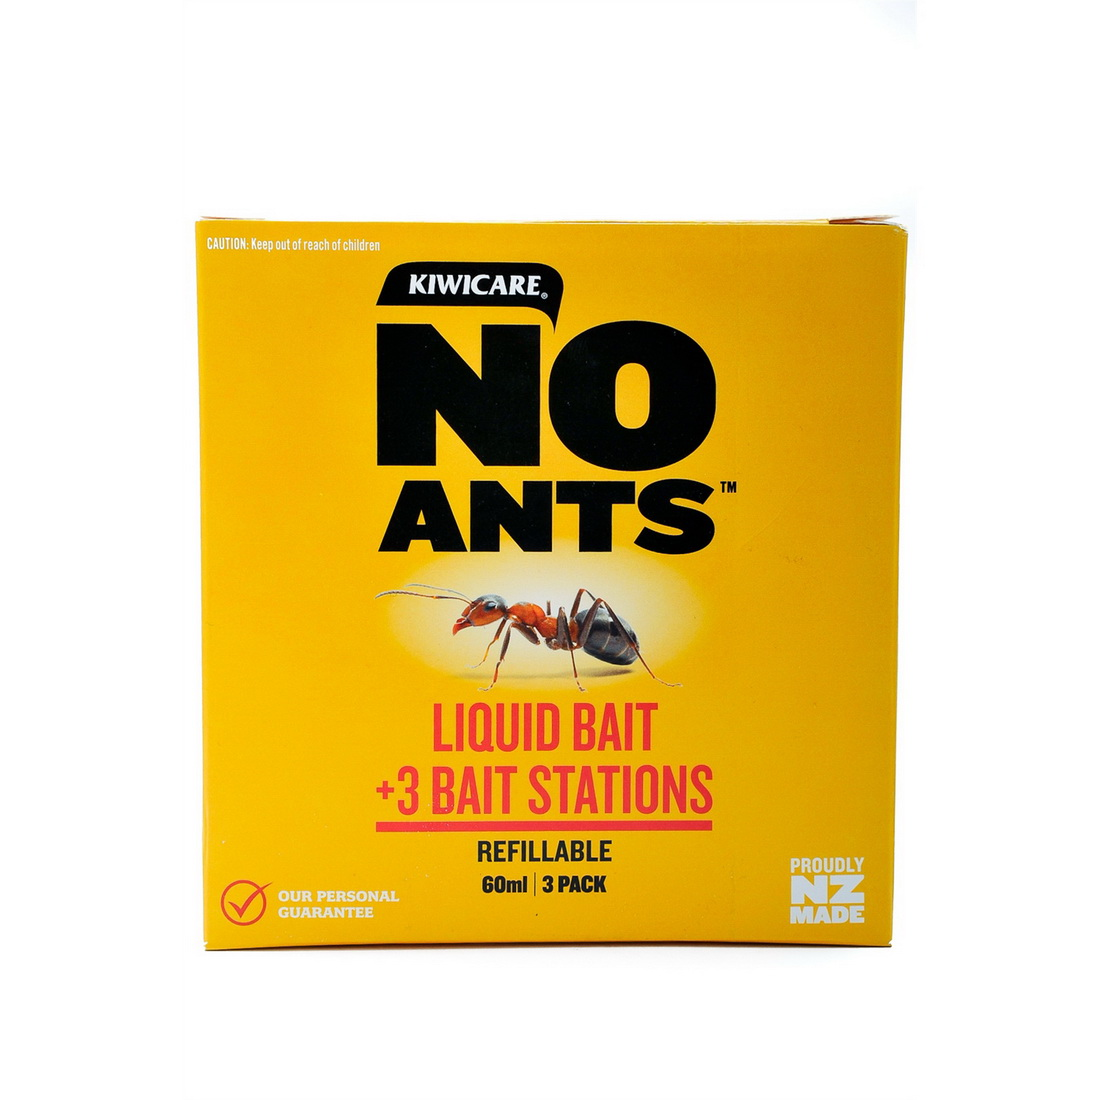 Kiwicare NO Ants Liquid Bait & Station Pest Control 60 mL Red/Brown 30020